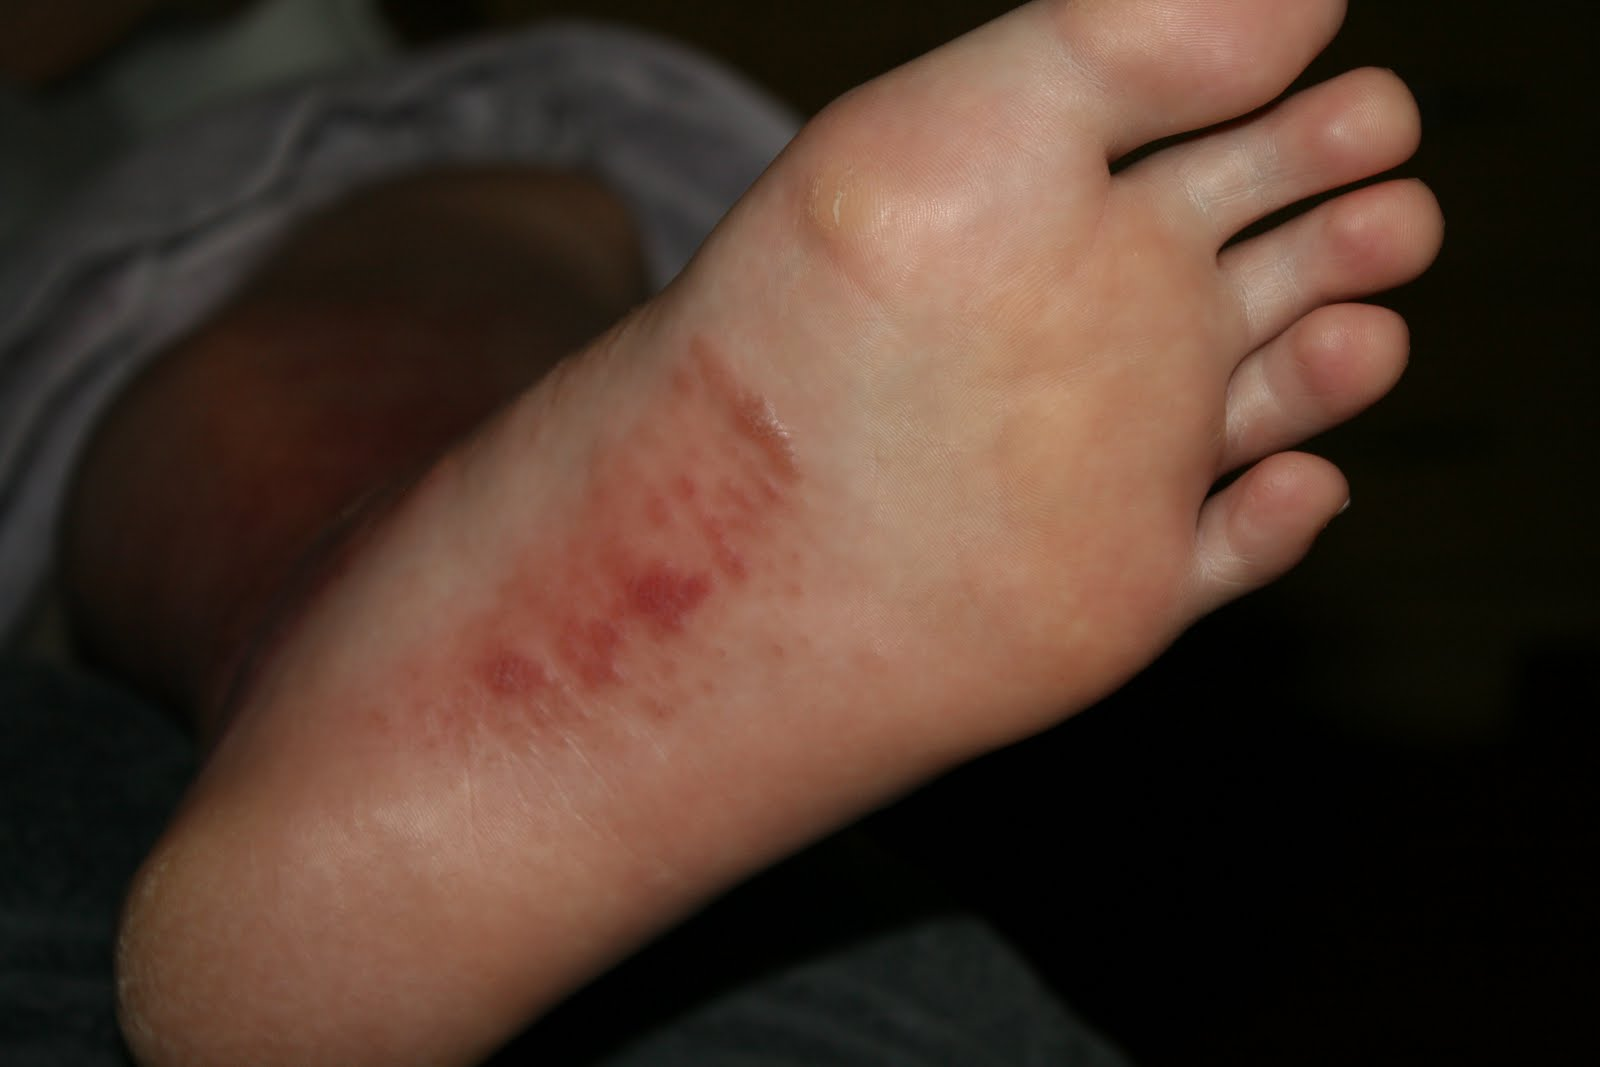 itchy blisters on bottom of feet #11